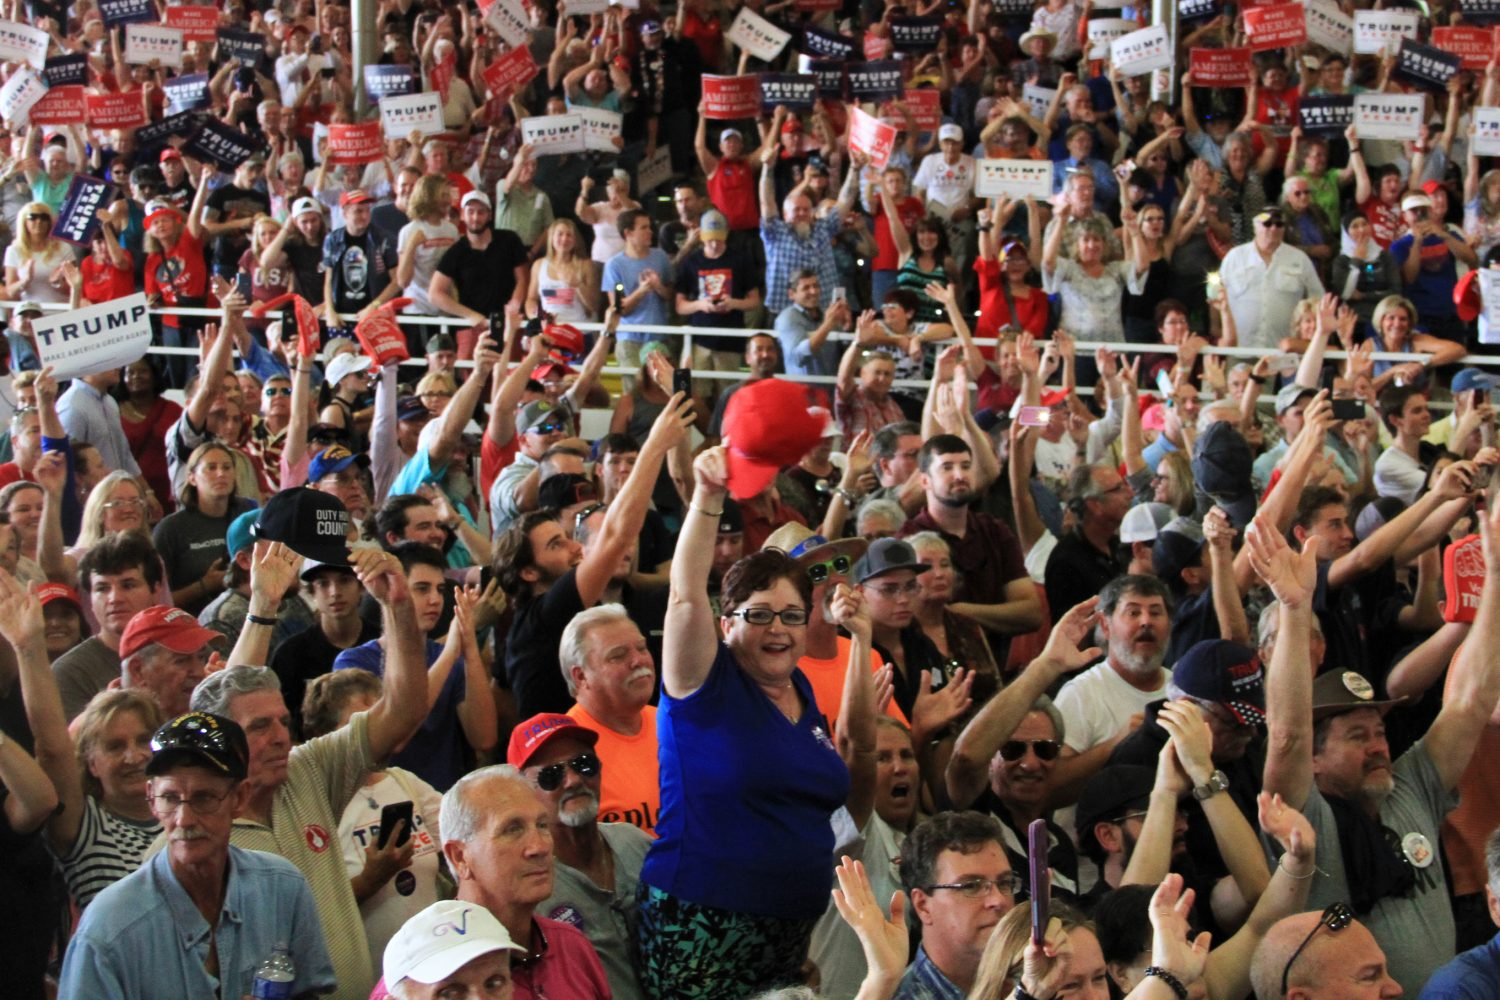 """A member of the crowd waves her hat at Donald Trump during his speech Wednesday afternoon. Event organizers estimated that 10,000 people attended the rally, while Trump claimed in his speech that the number was closer to 15,000. The crowd frequently interrupted Trump's speech with cheers, boos and chants, including perennial favorites """"Build the Wall"""" and """"Lock Her Up."""""""